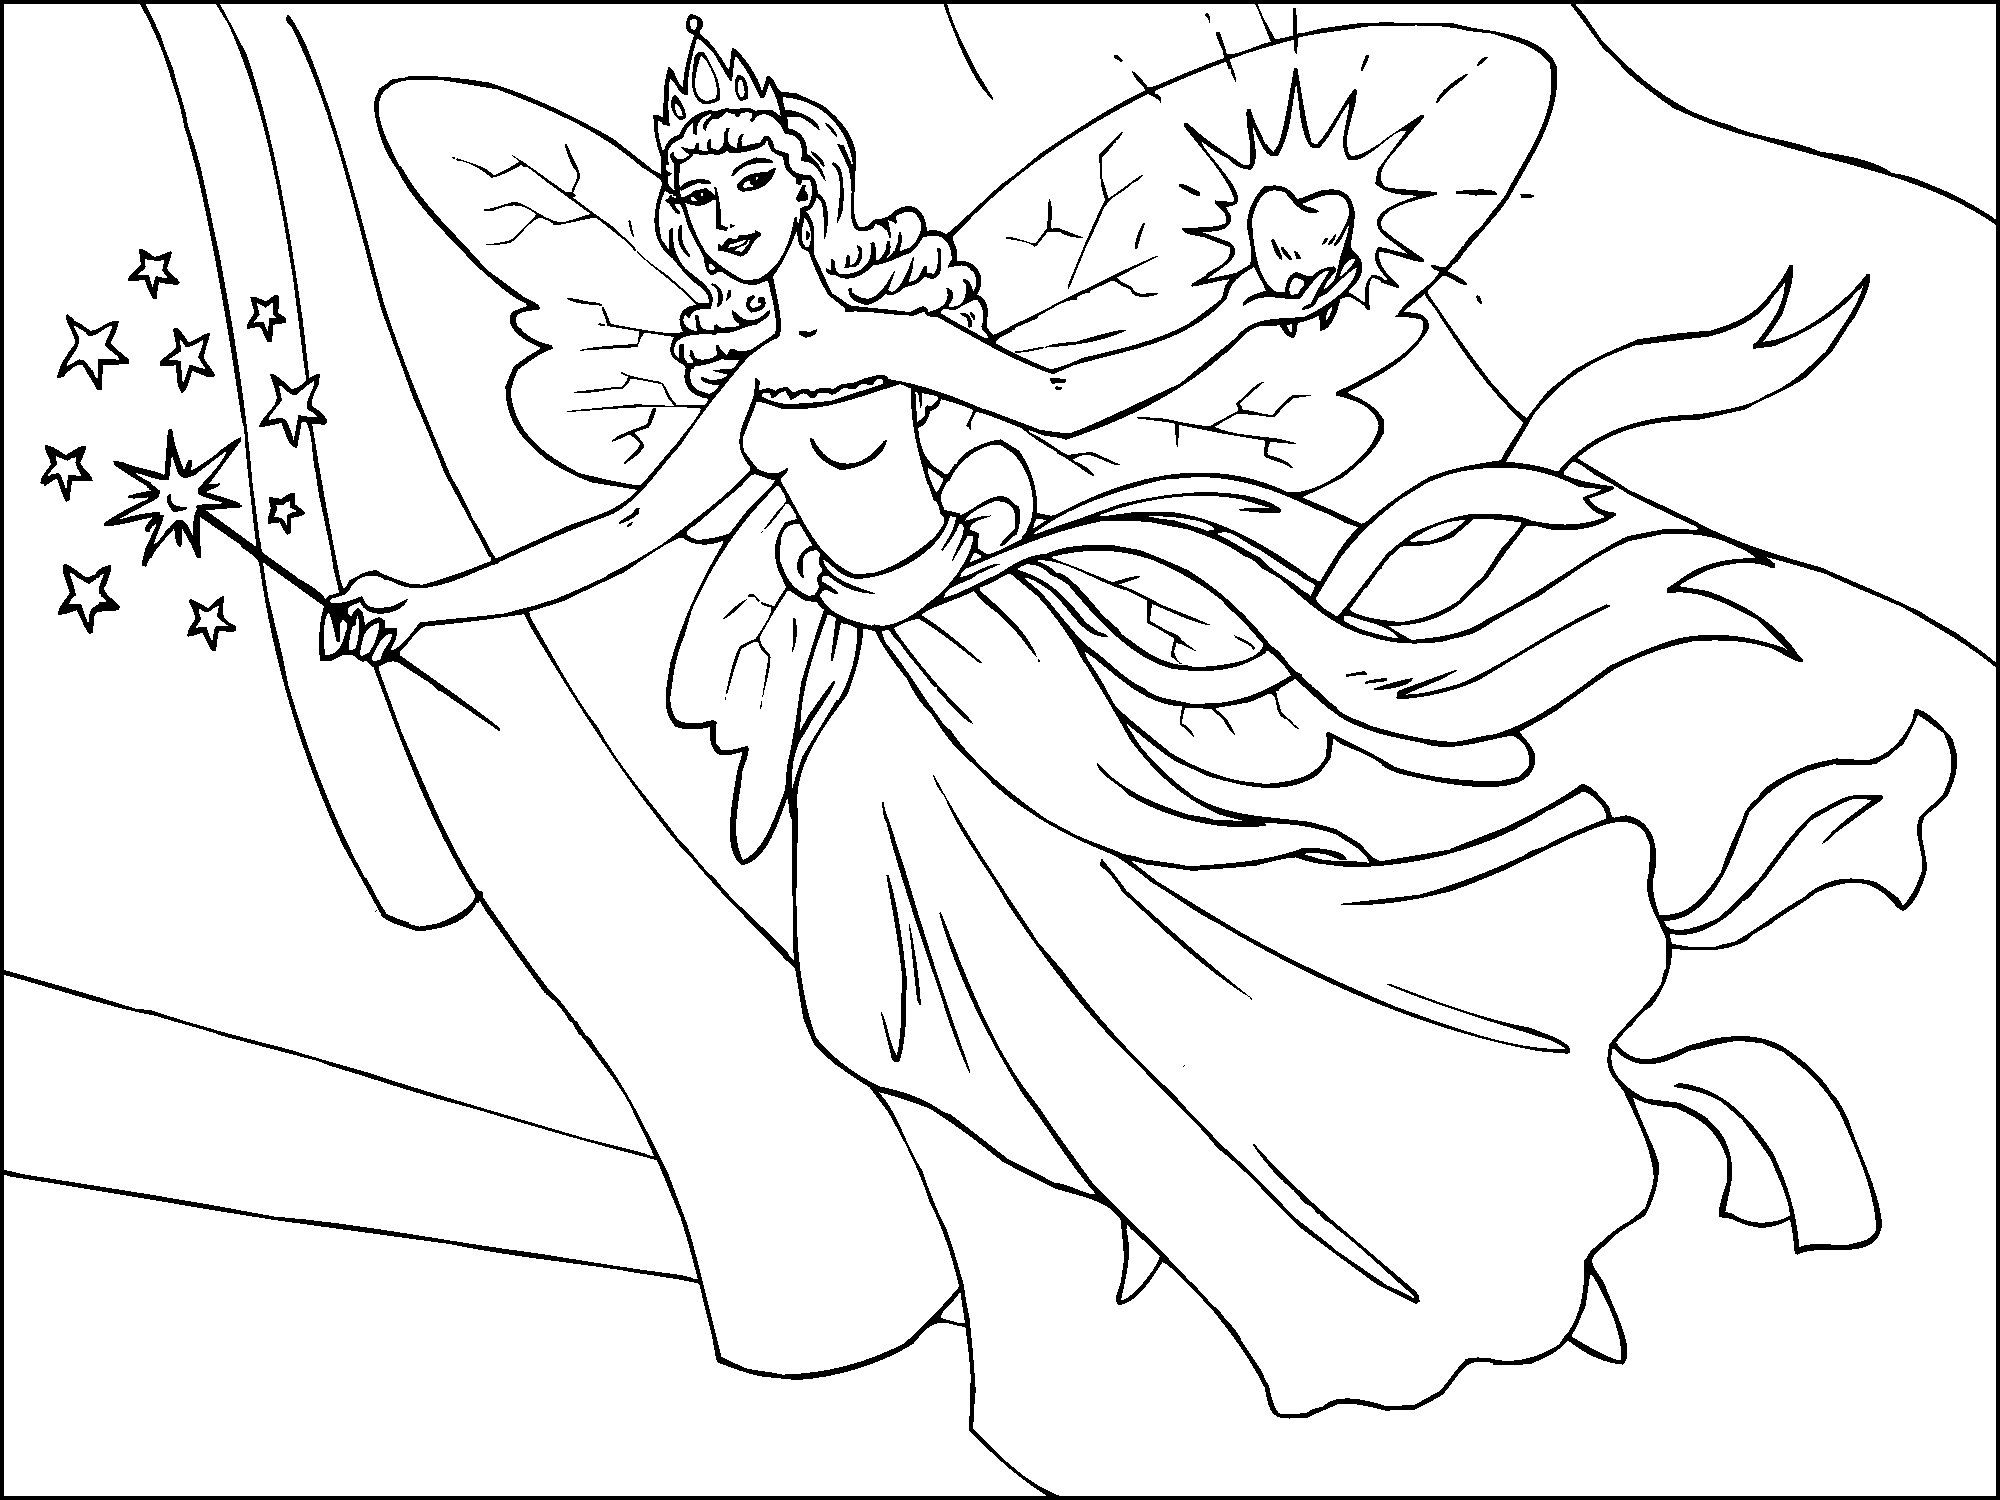 Free Printable Fairy Coloring Pages For Kids | Everything - Free Printable Fairy Coloring Pictures